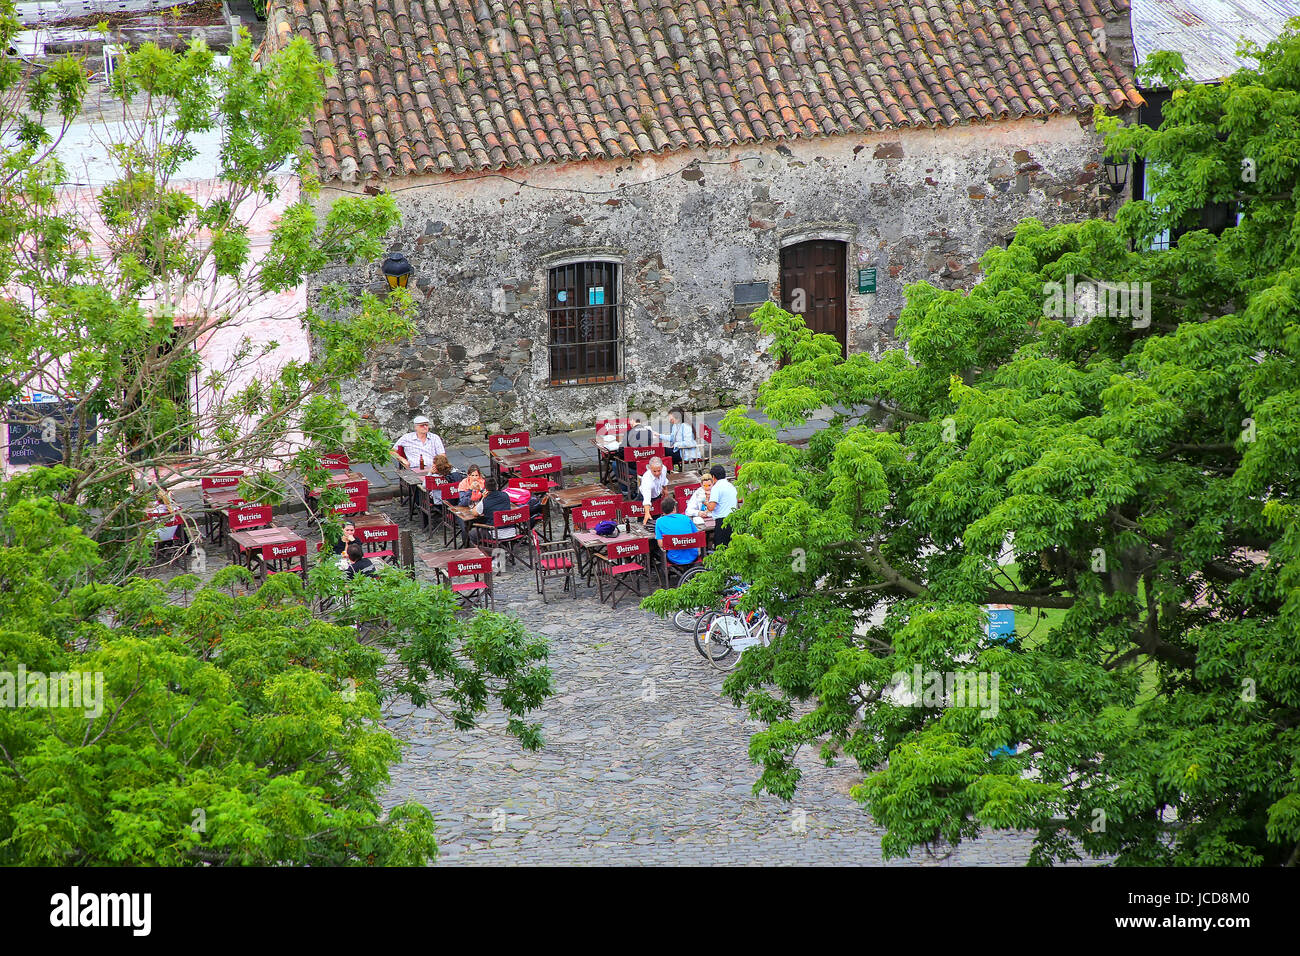 Street cafe in Colonia del Sacramento, Uruguay. It is one of the oldest towns in Uruguay - Stock Image